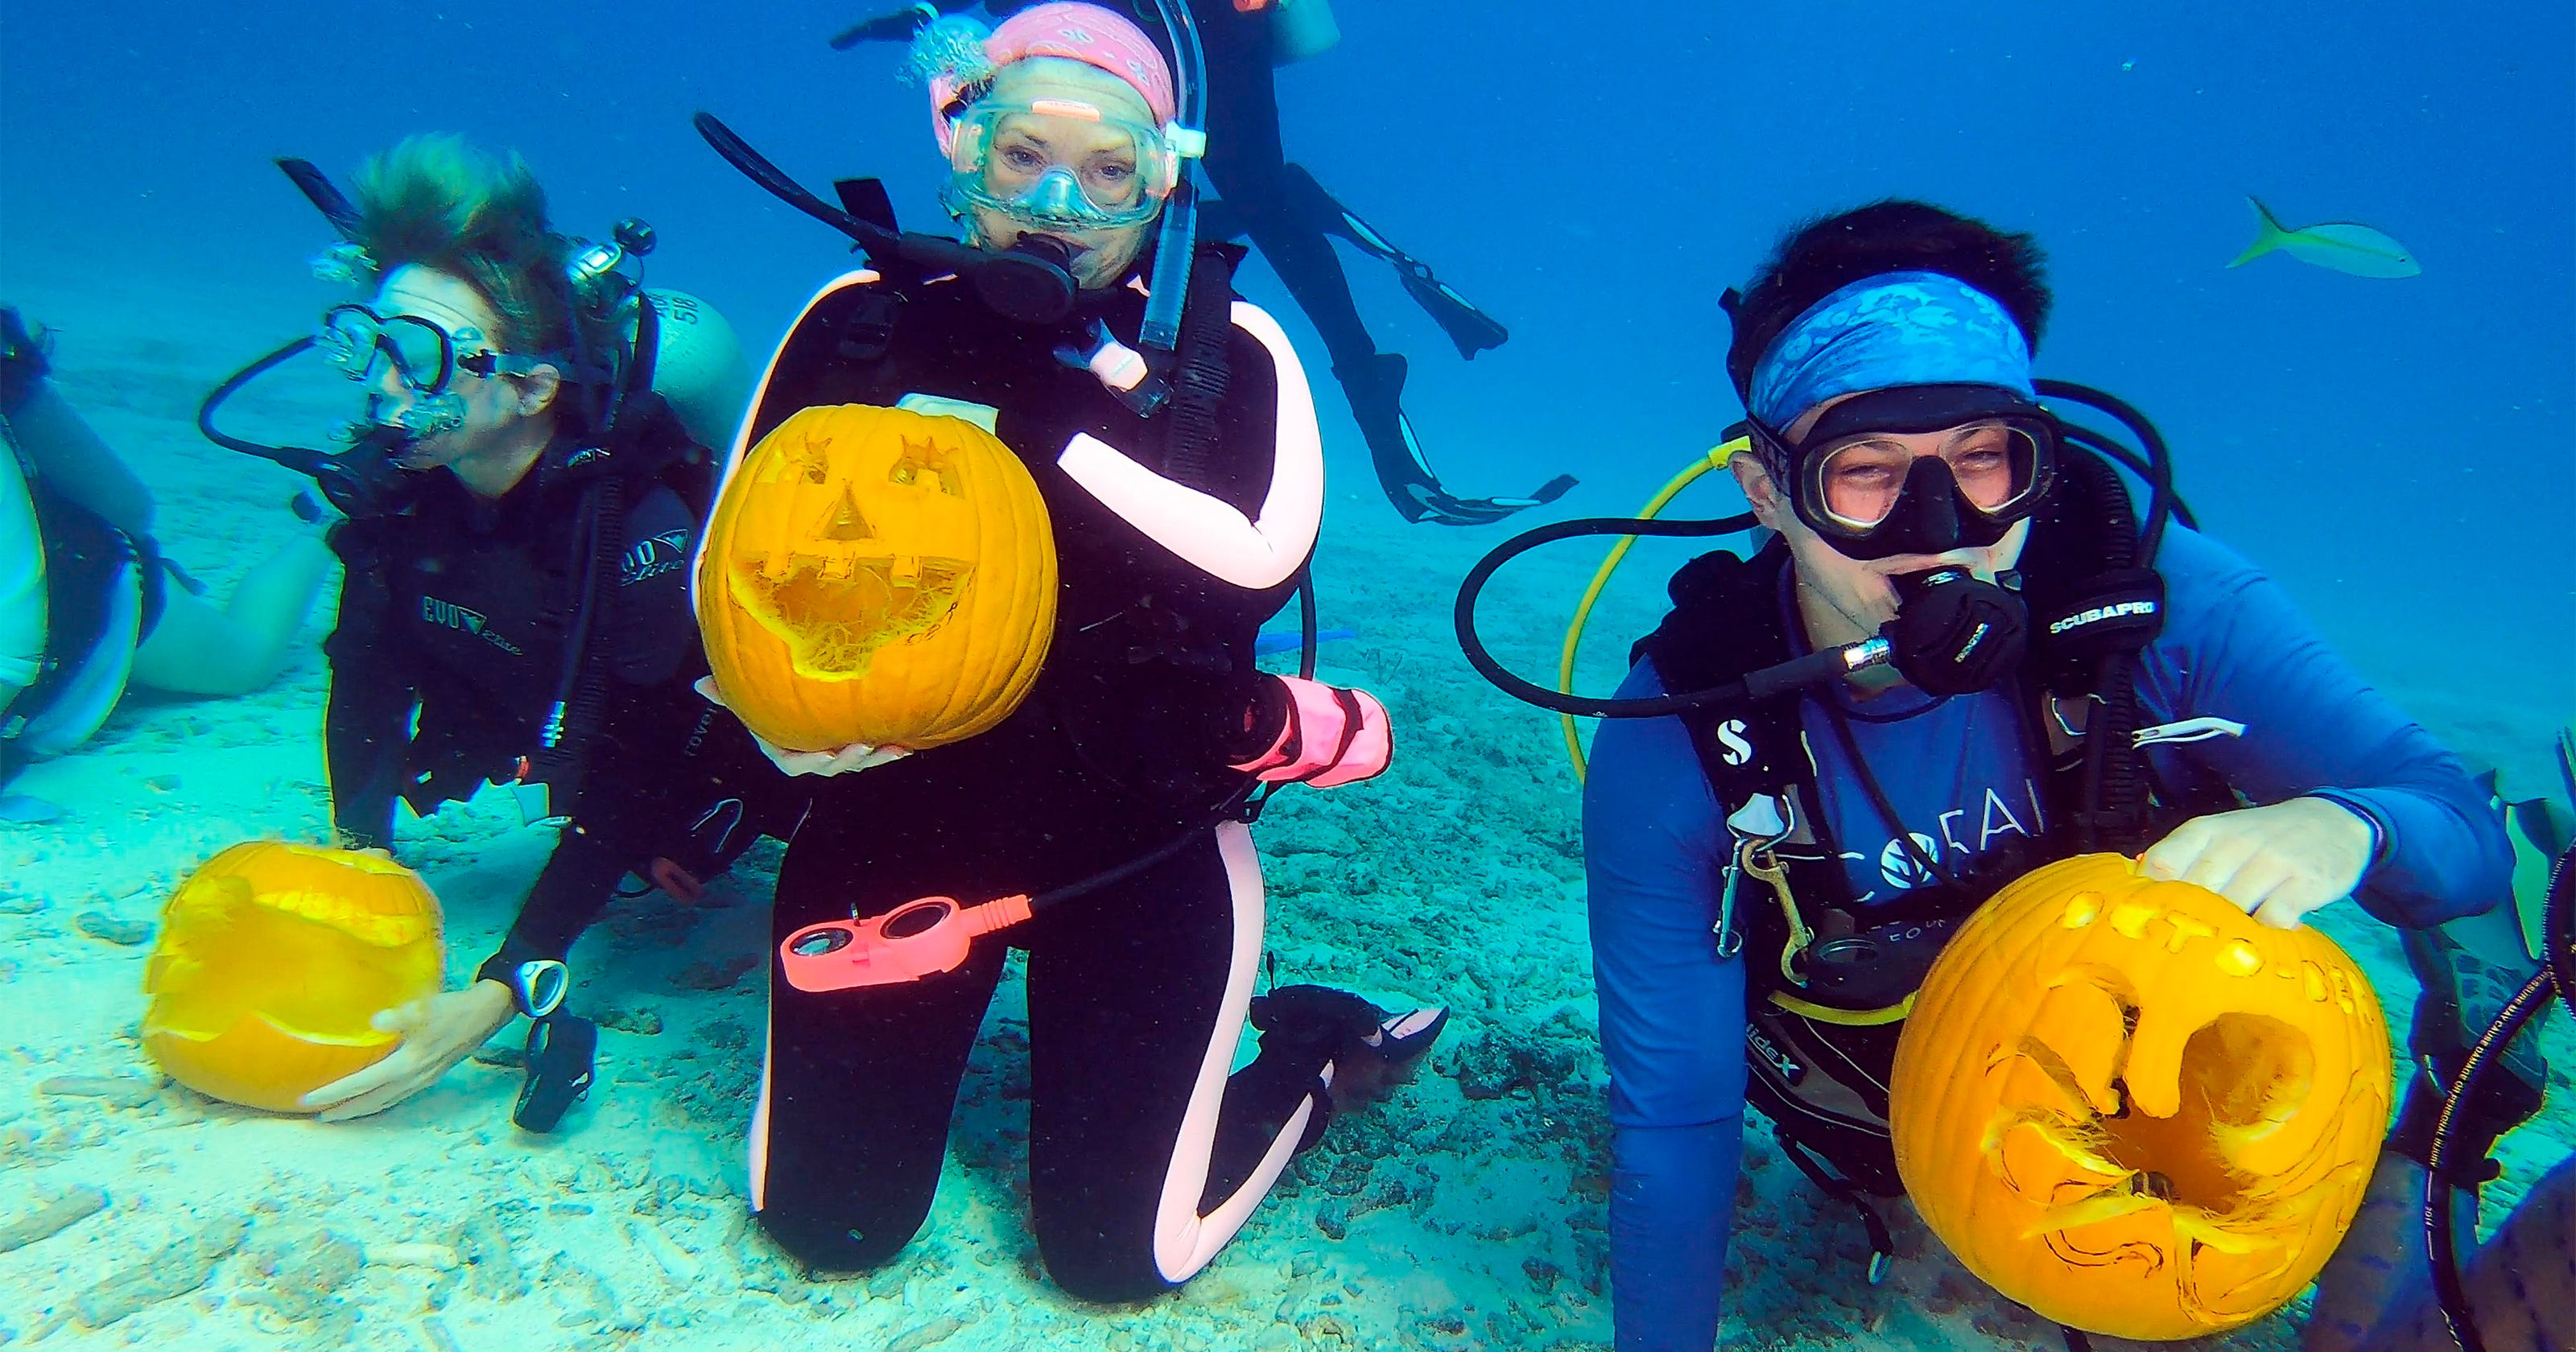 Scuba pumpkins, whey vodka, acorn bumper crop: News from around our 50 states